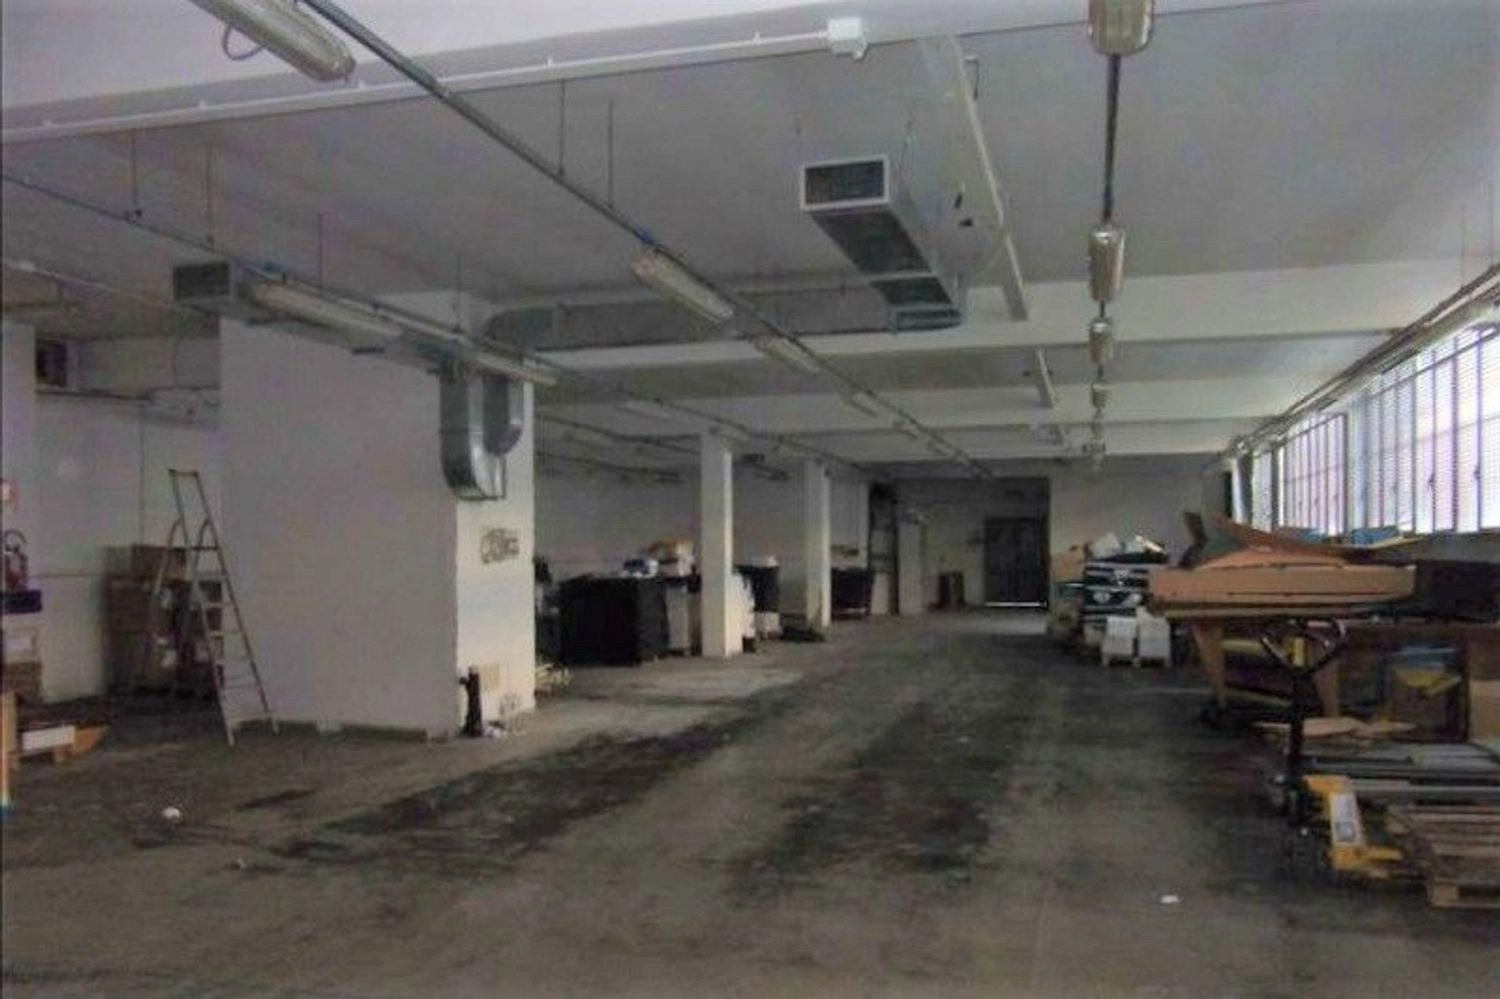 basement workshop flooring  looking for a professional epoxy flooring  contractor in phoenix  a well installed and maintained epoxy floor is  capable of